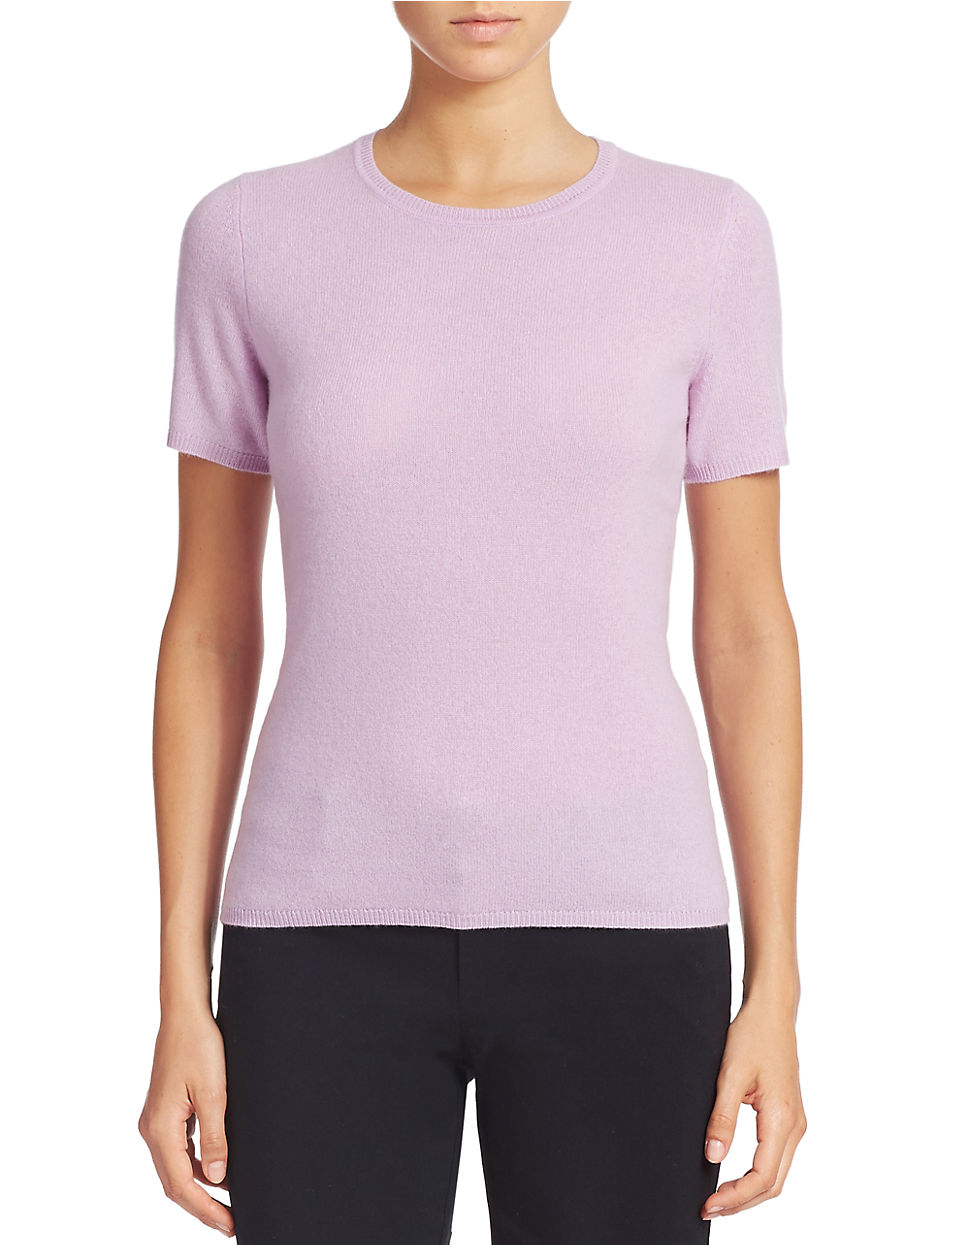 Lord & taylor Short Sleeve Cashmere Crewneck Sweater in Pink | Lyst